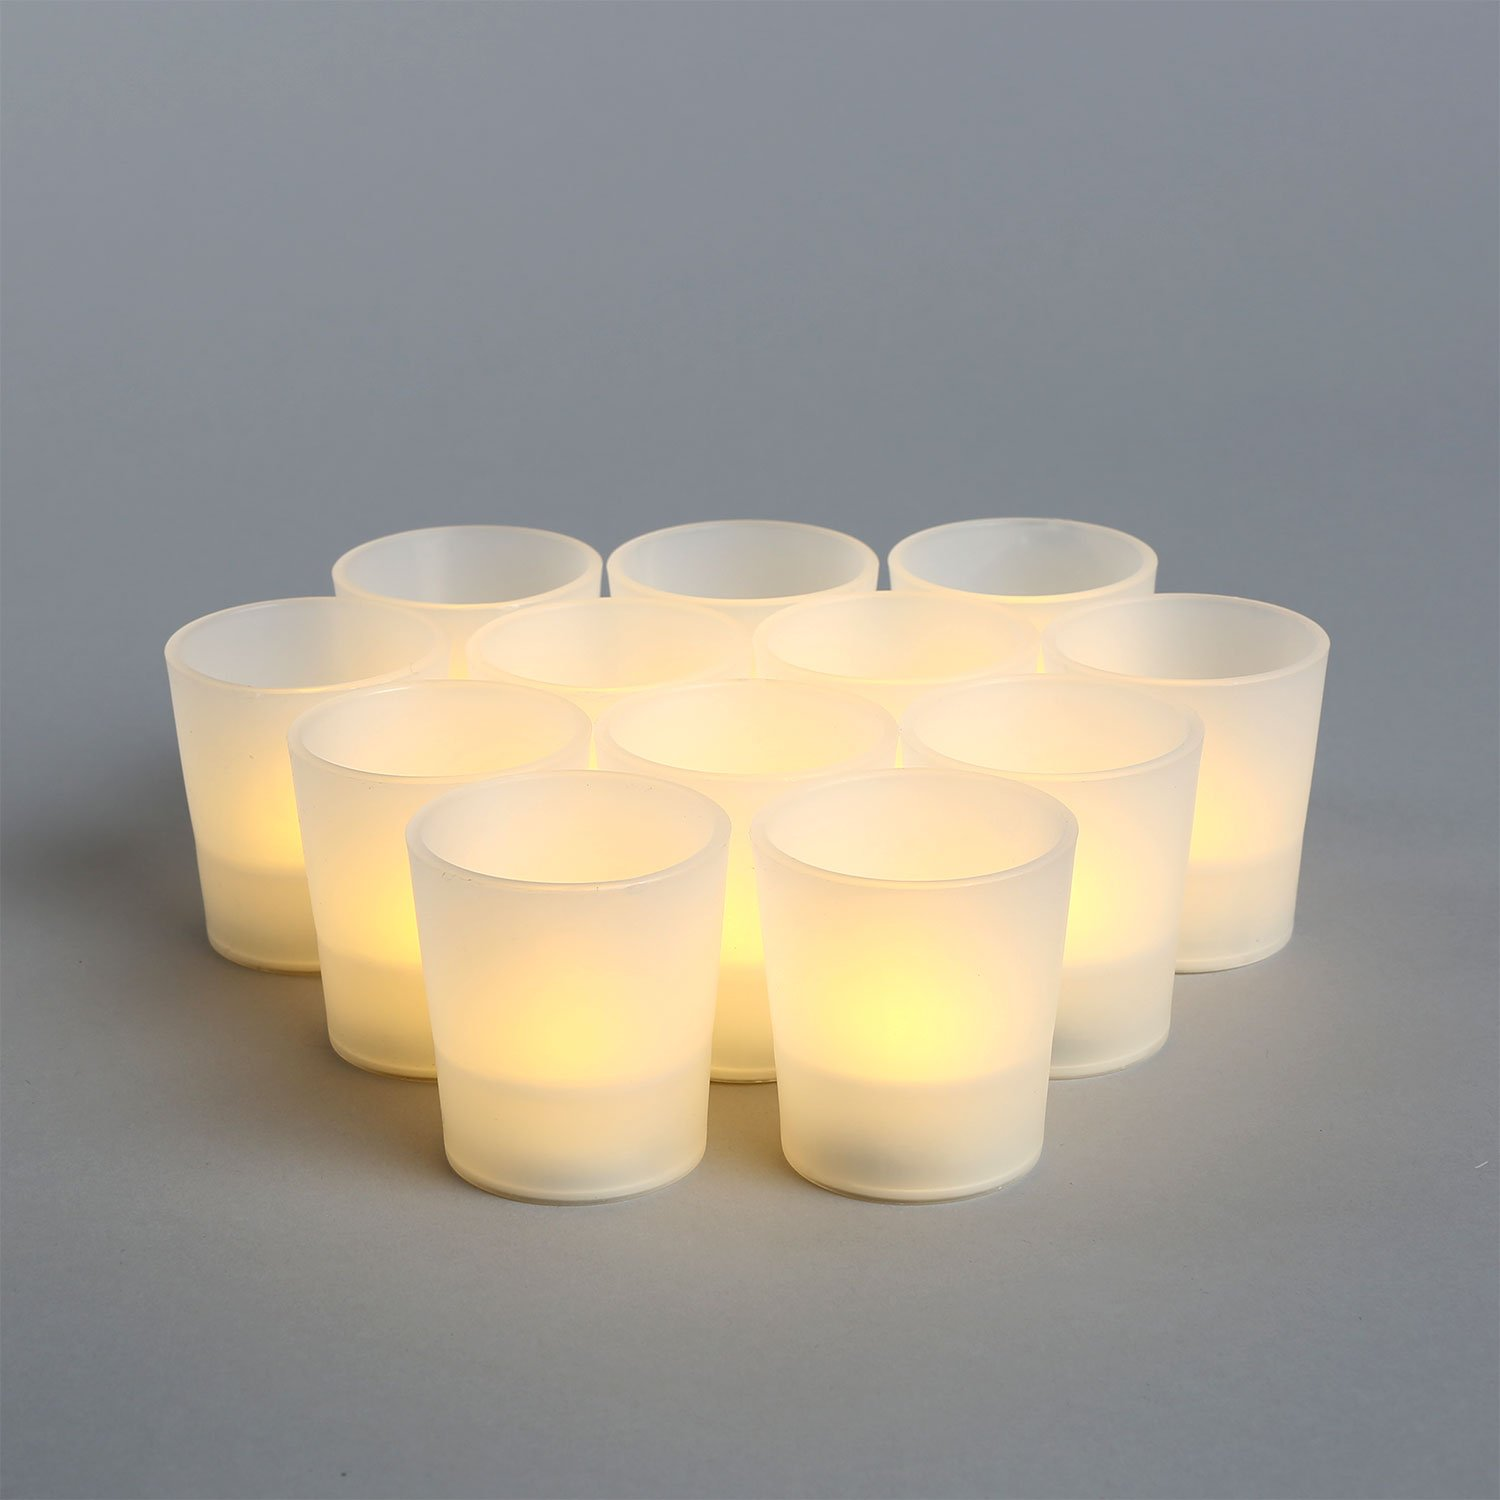 Flameless Tea Lights with Frosted Resin Holders, Set of 12, Warm White LEDs, Indoor/Outdoor Use, Batteries Included